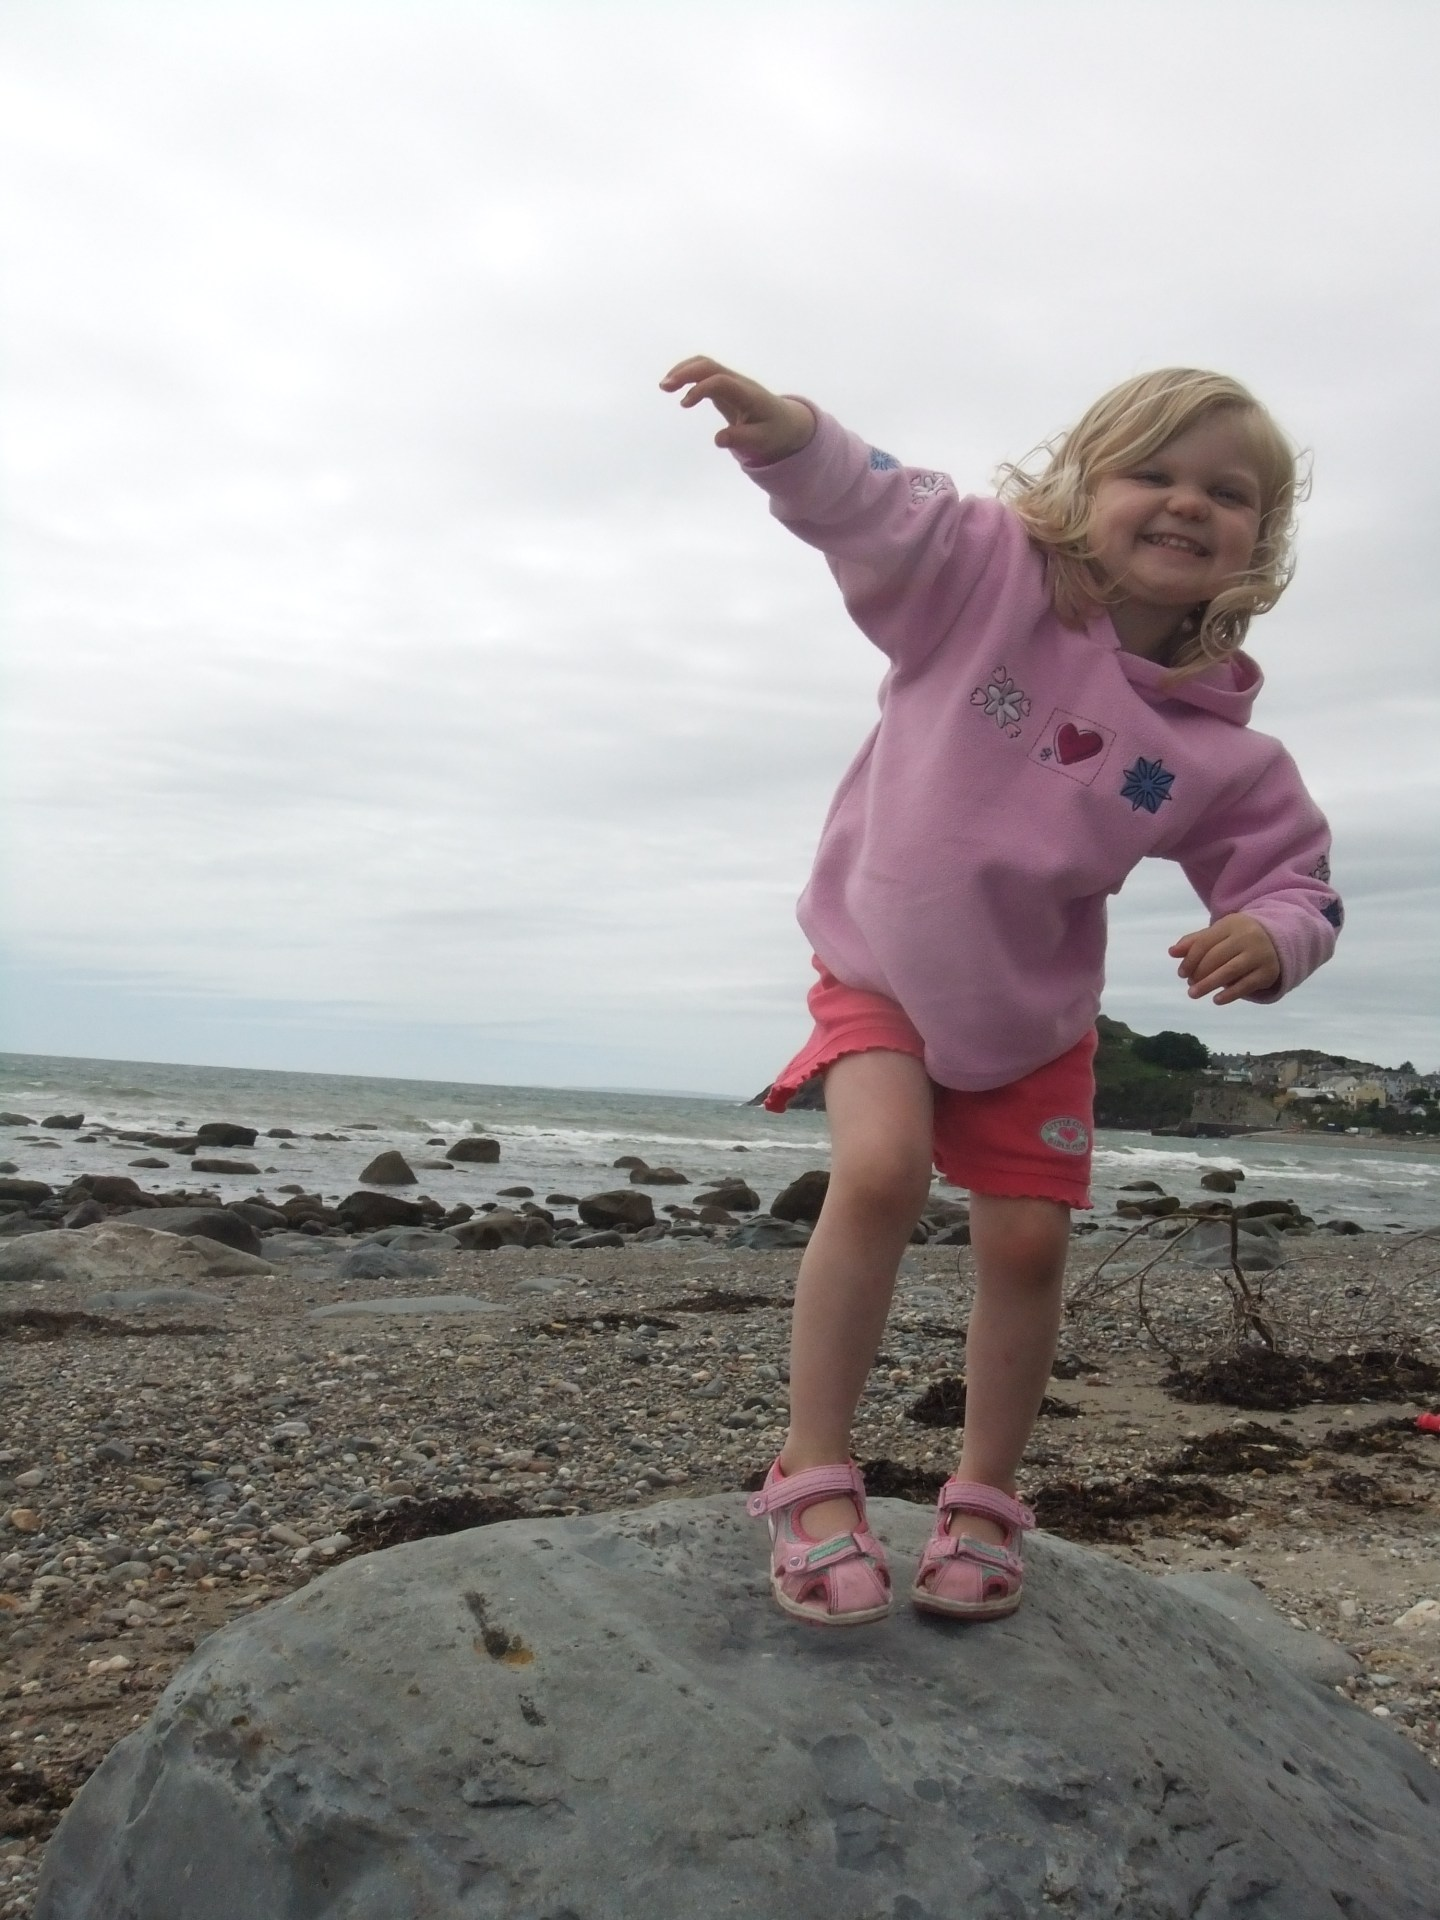 Rockpooling is fun, but so is dancing on giant rocks